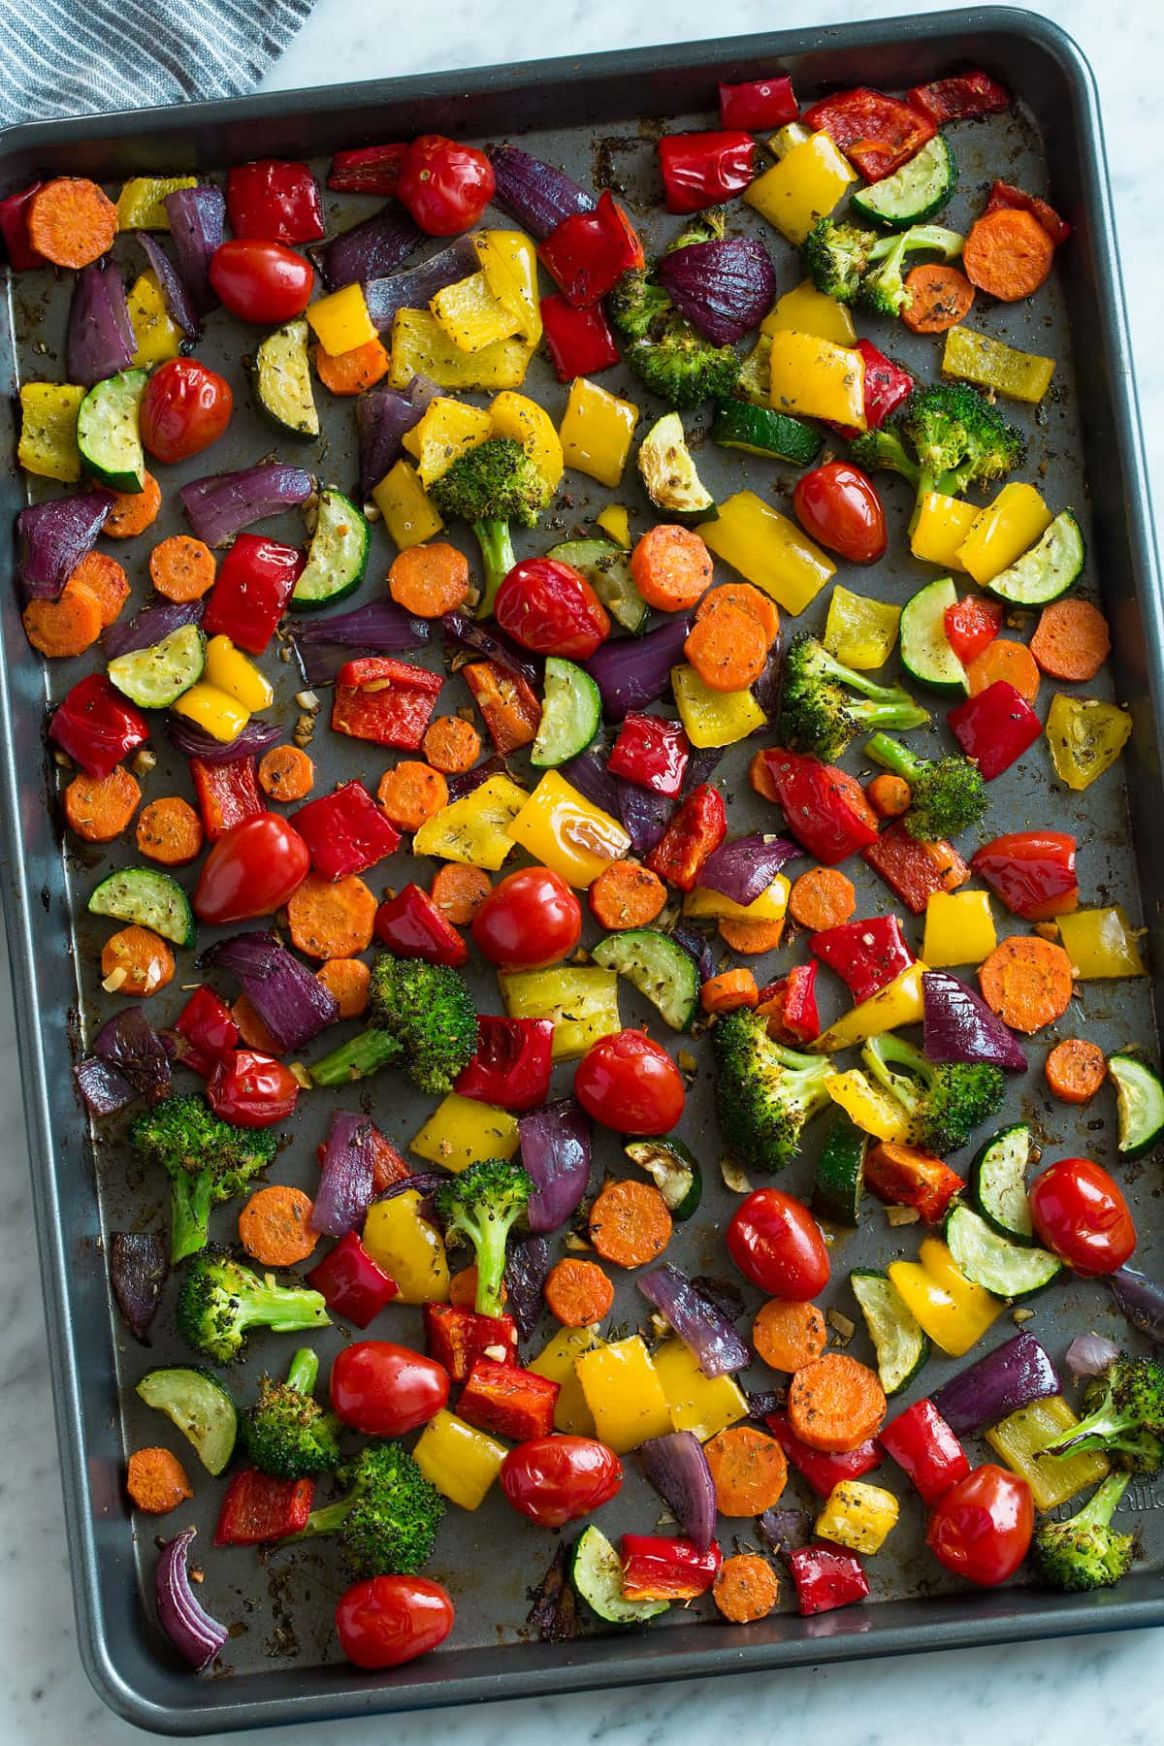 Oven Roasted Vegetables Recipe - Cooking Classy - Recipes Vegetables Oven